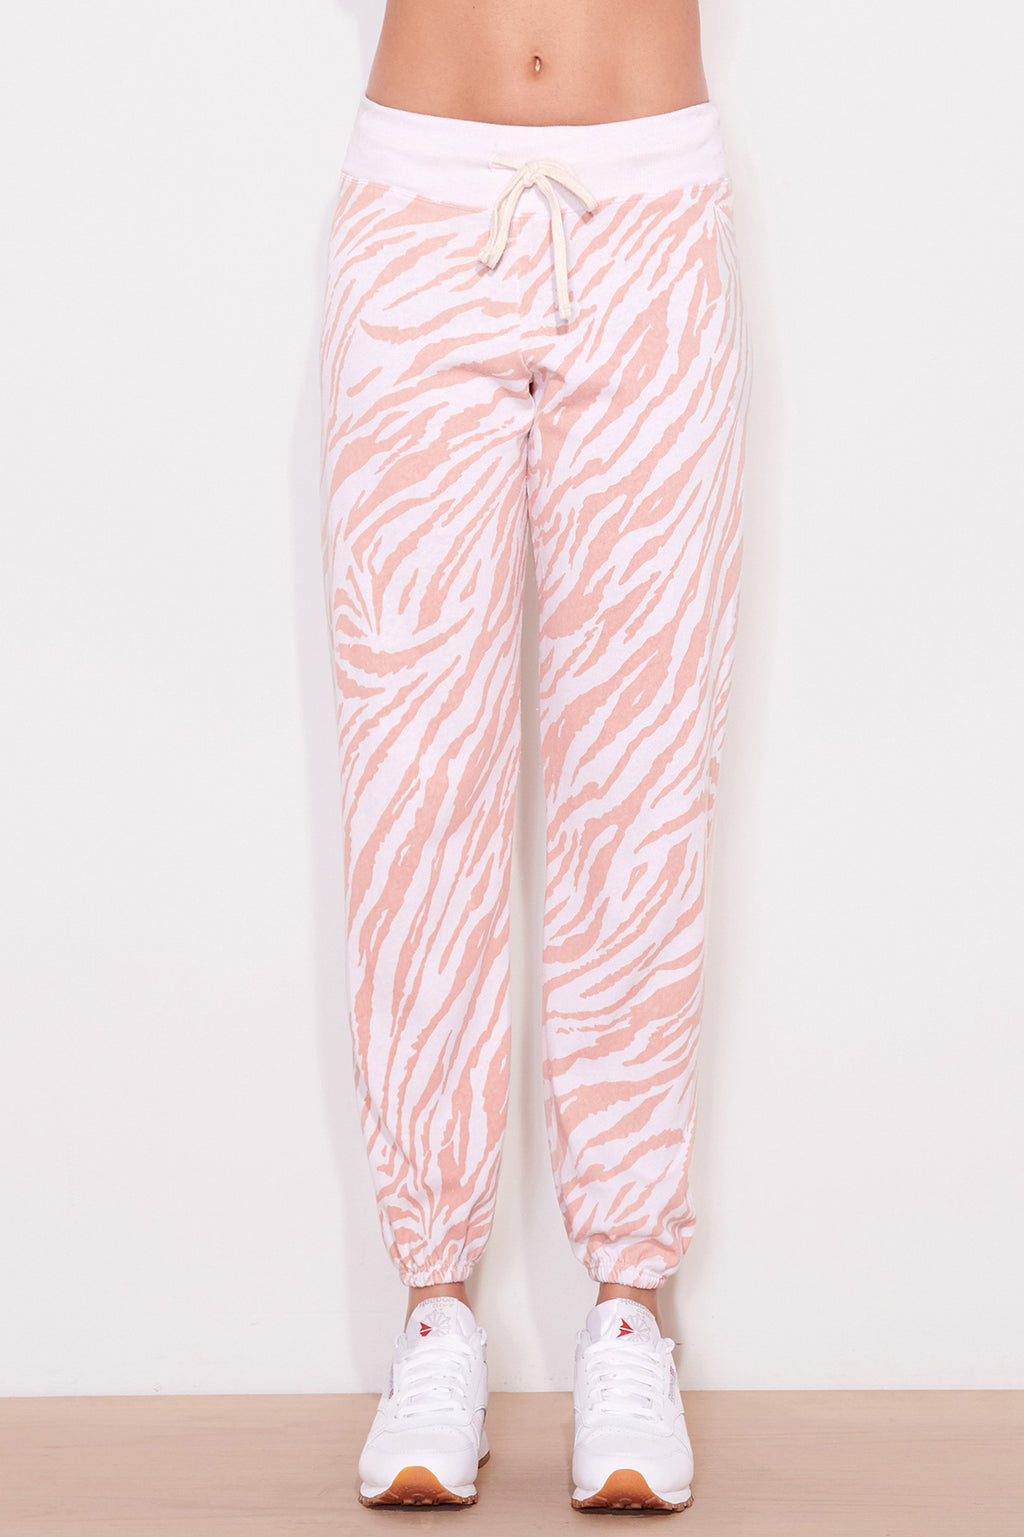 Zebra Sweatpants